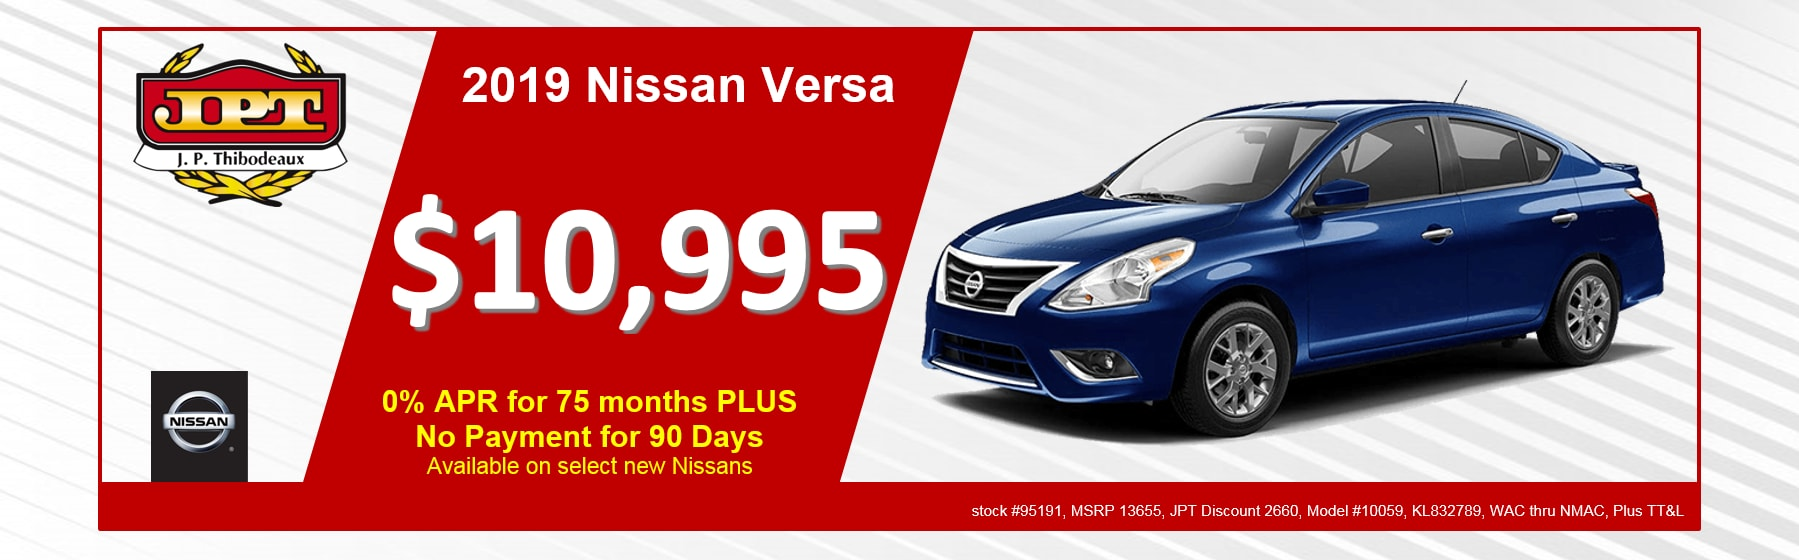 Jp Thibodeaux Nissan >> J.P. Thibodeaux Nissan | New Nissan Dealership in New Iberia, LA